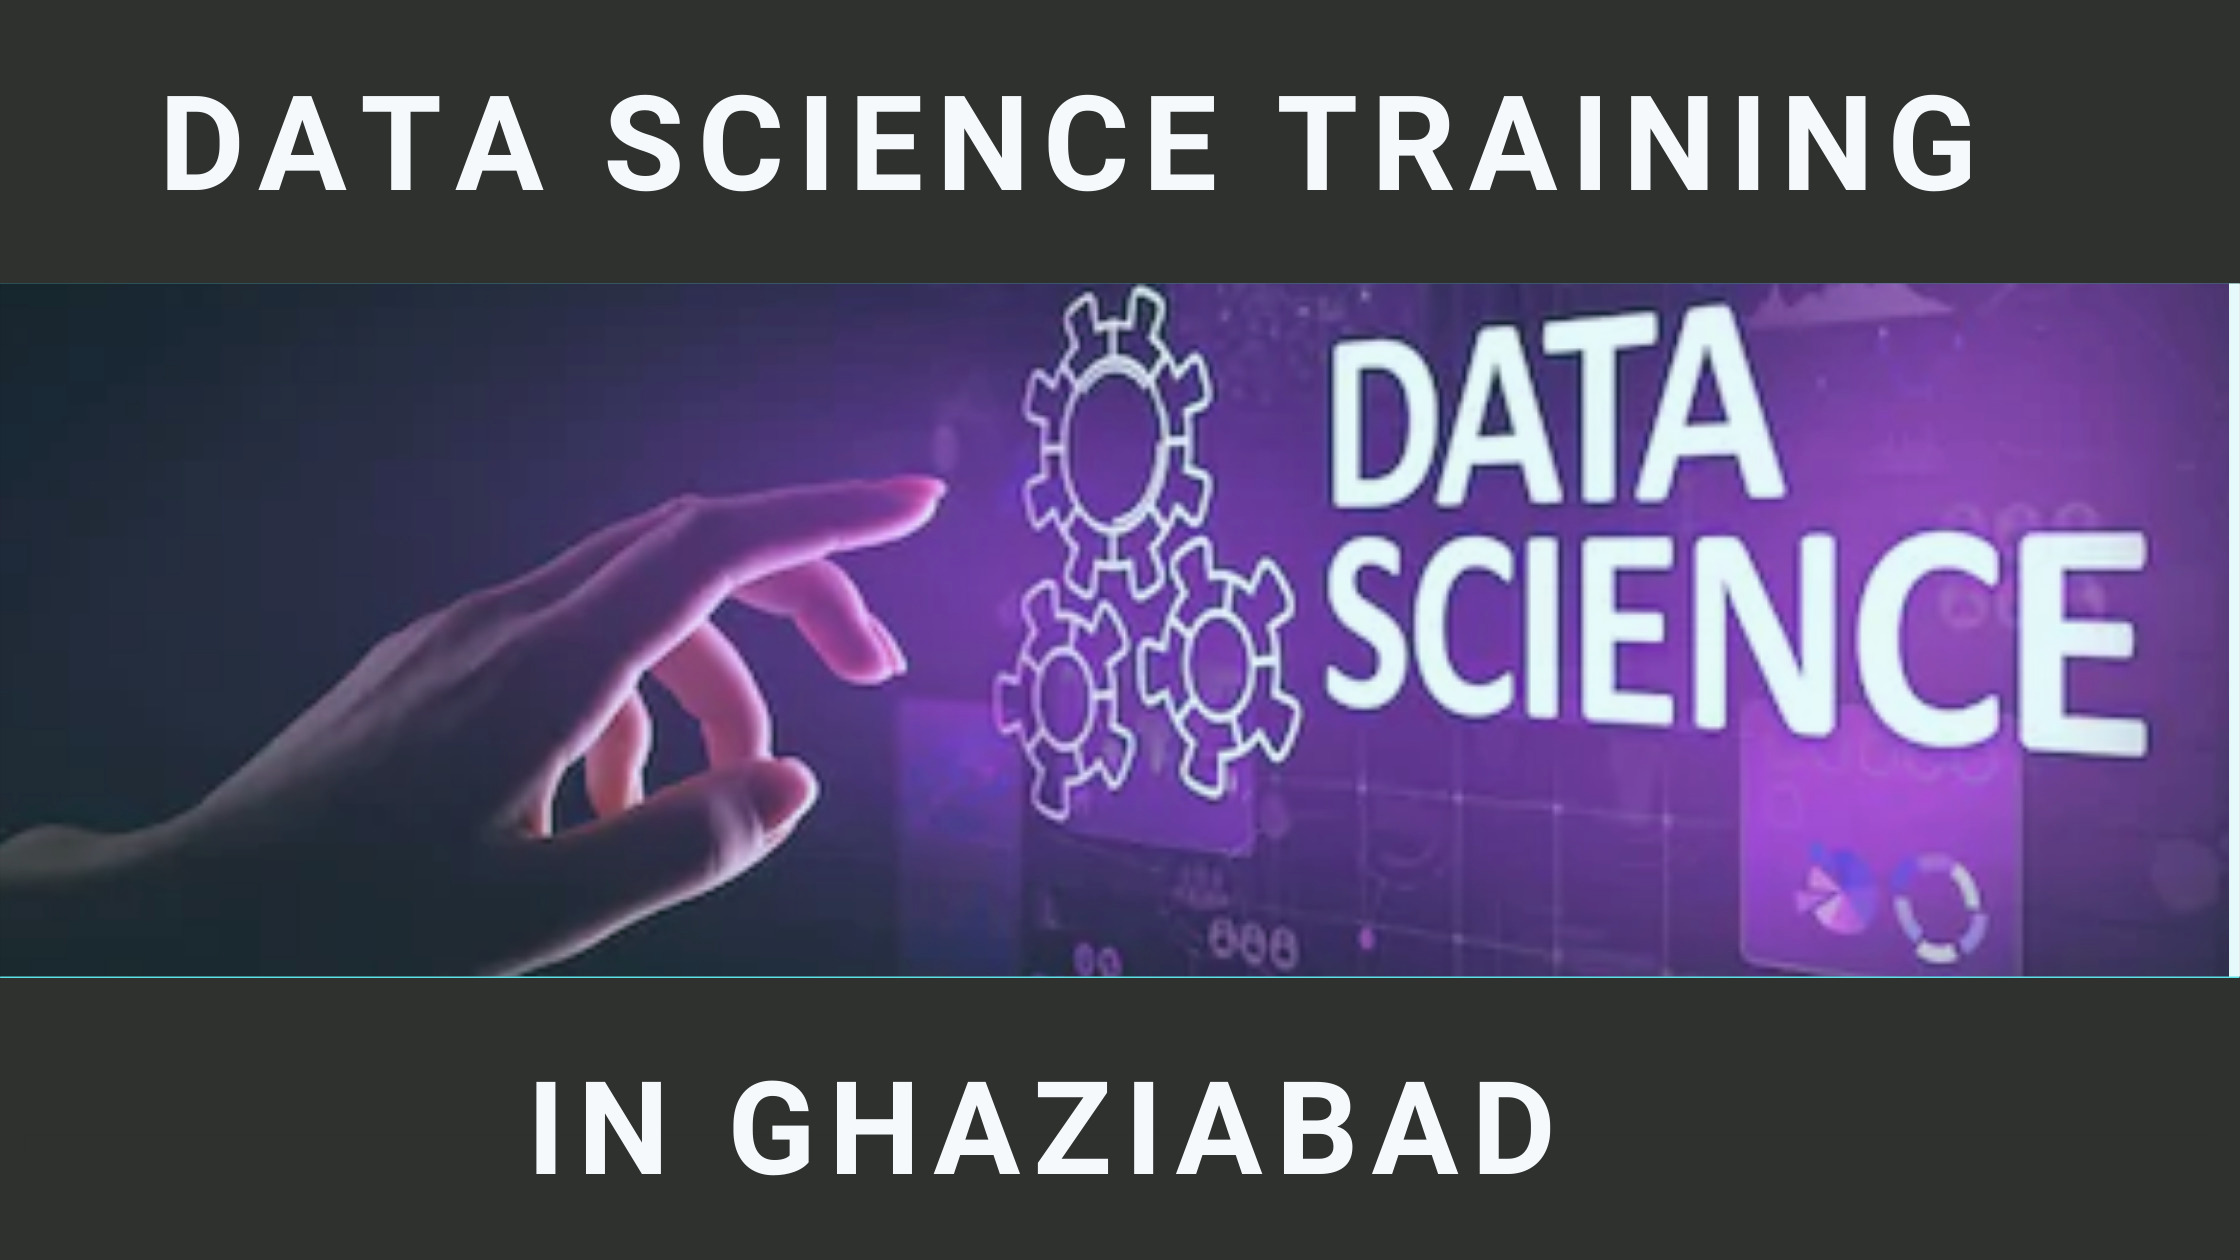 data_science_in_ghaziabad-background.jpeg